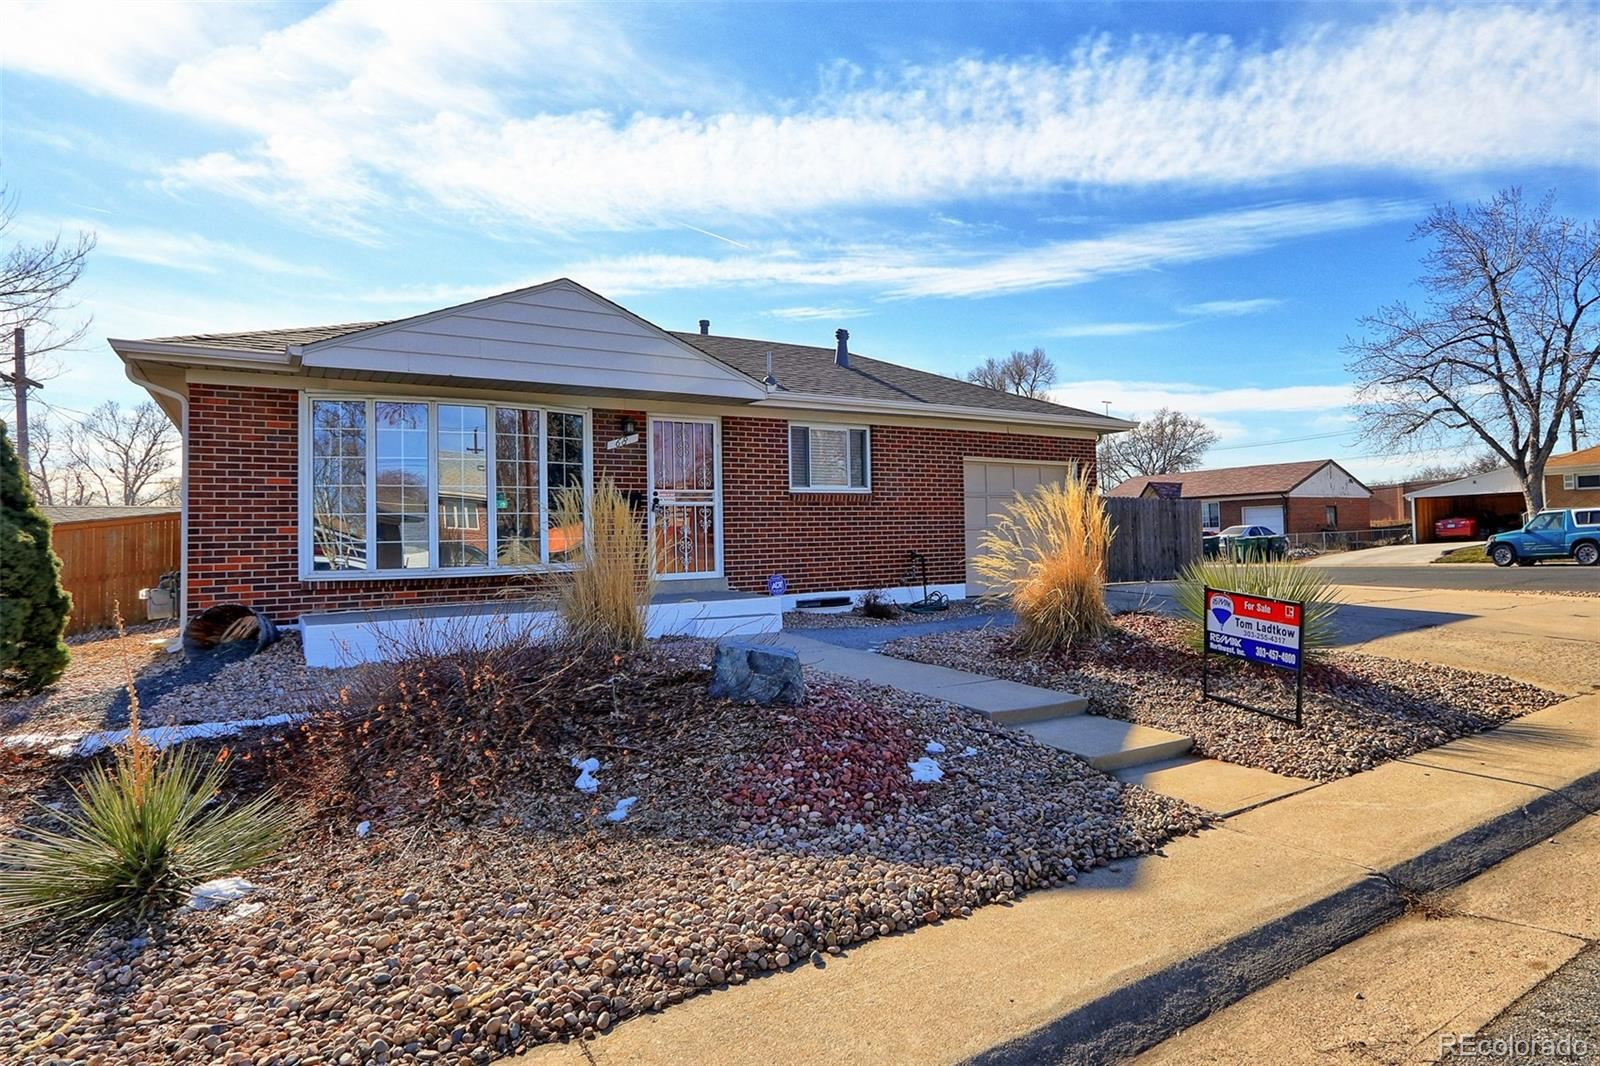 68 E 109th Place, Northglenn, CO 80233 - #: 2261375